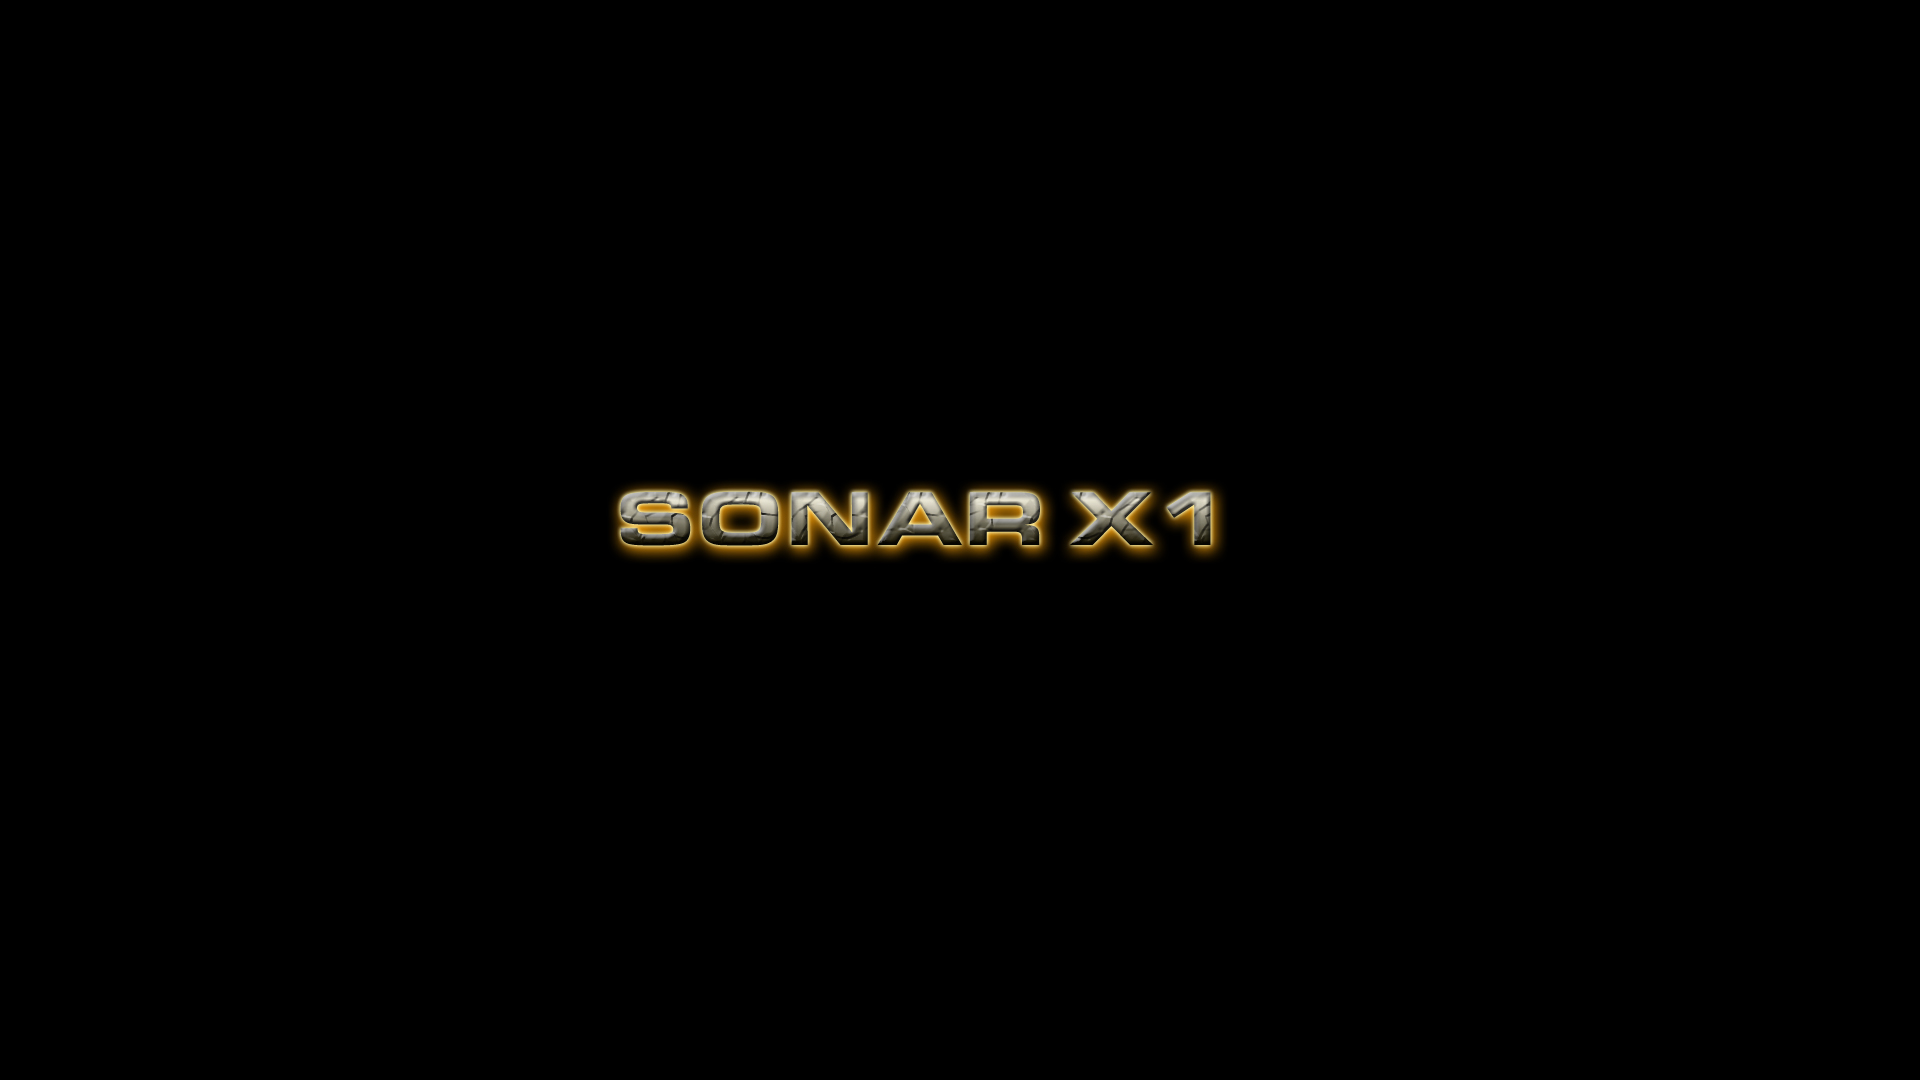 Sonar X1 Wallpaper 1920x1080